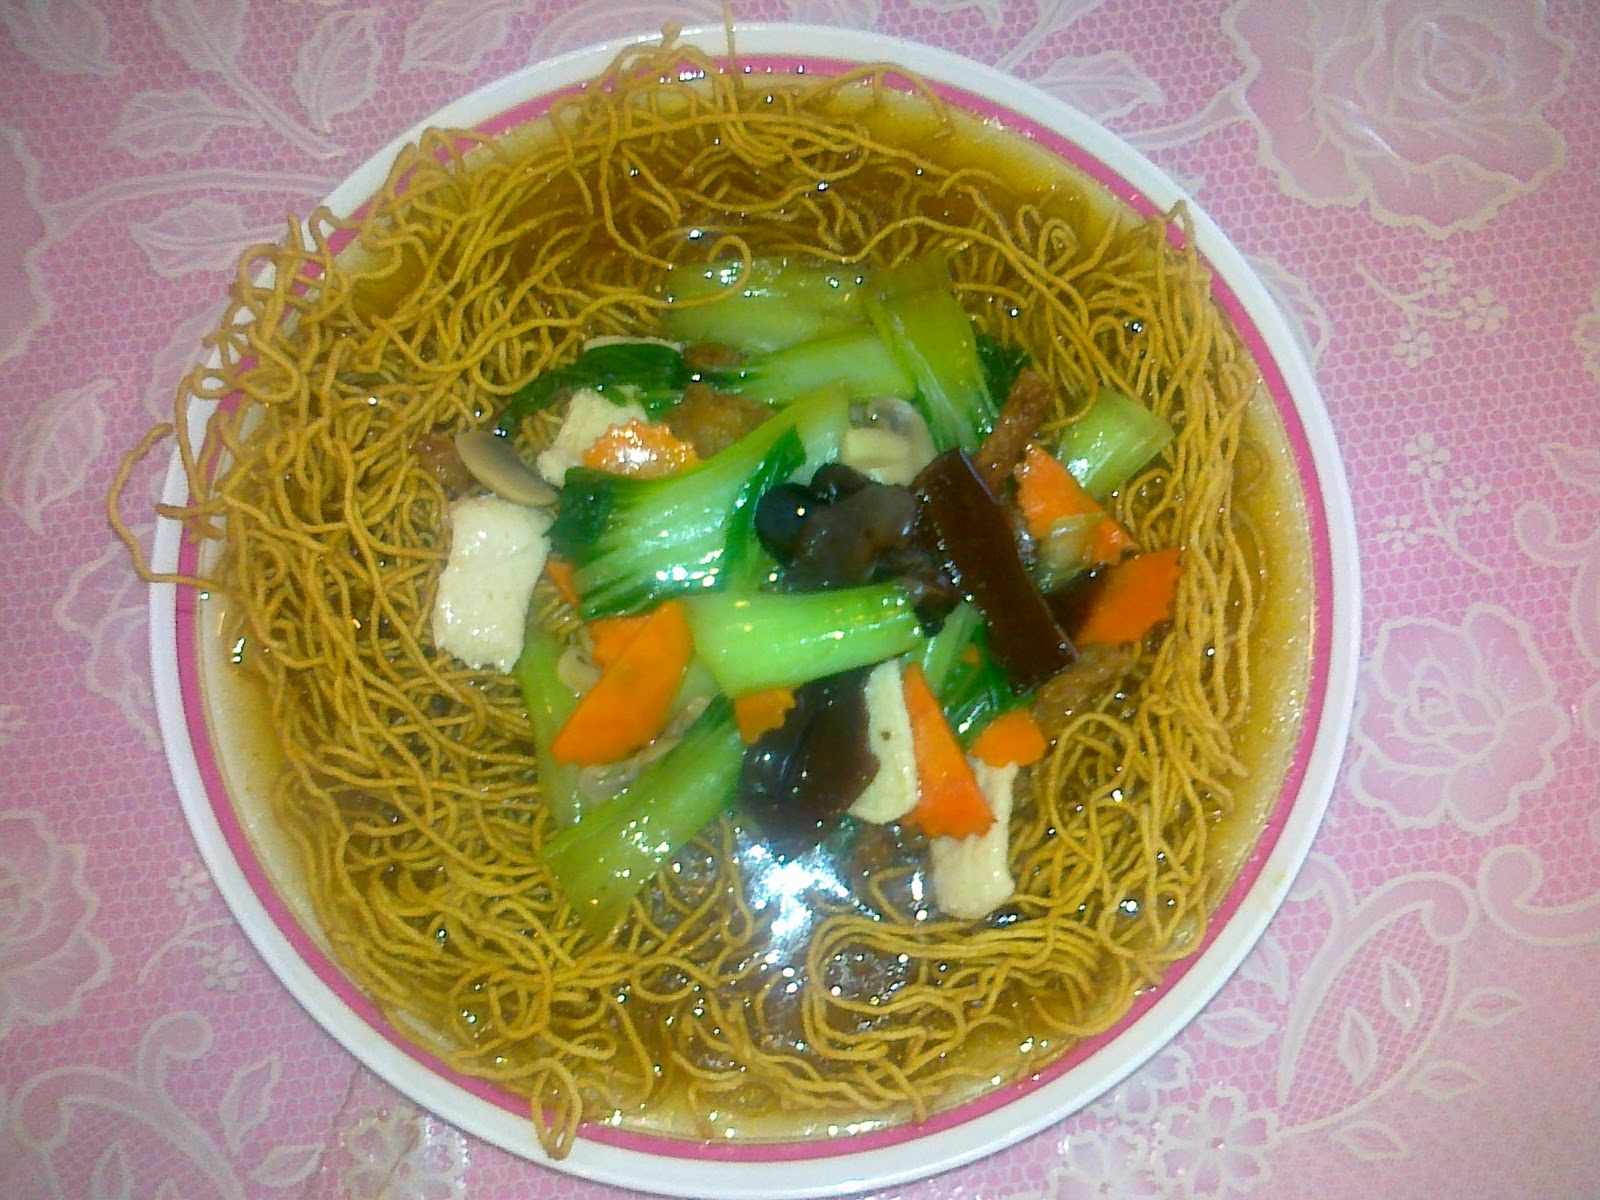 Healthy living where to find vegetarian foods 4 green for Lrs fish food